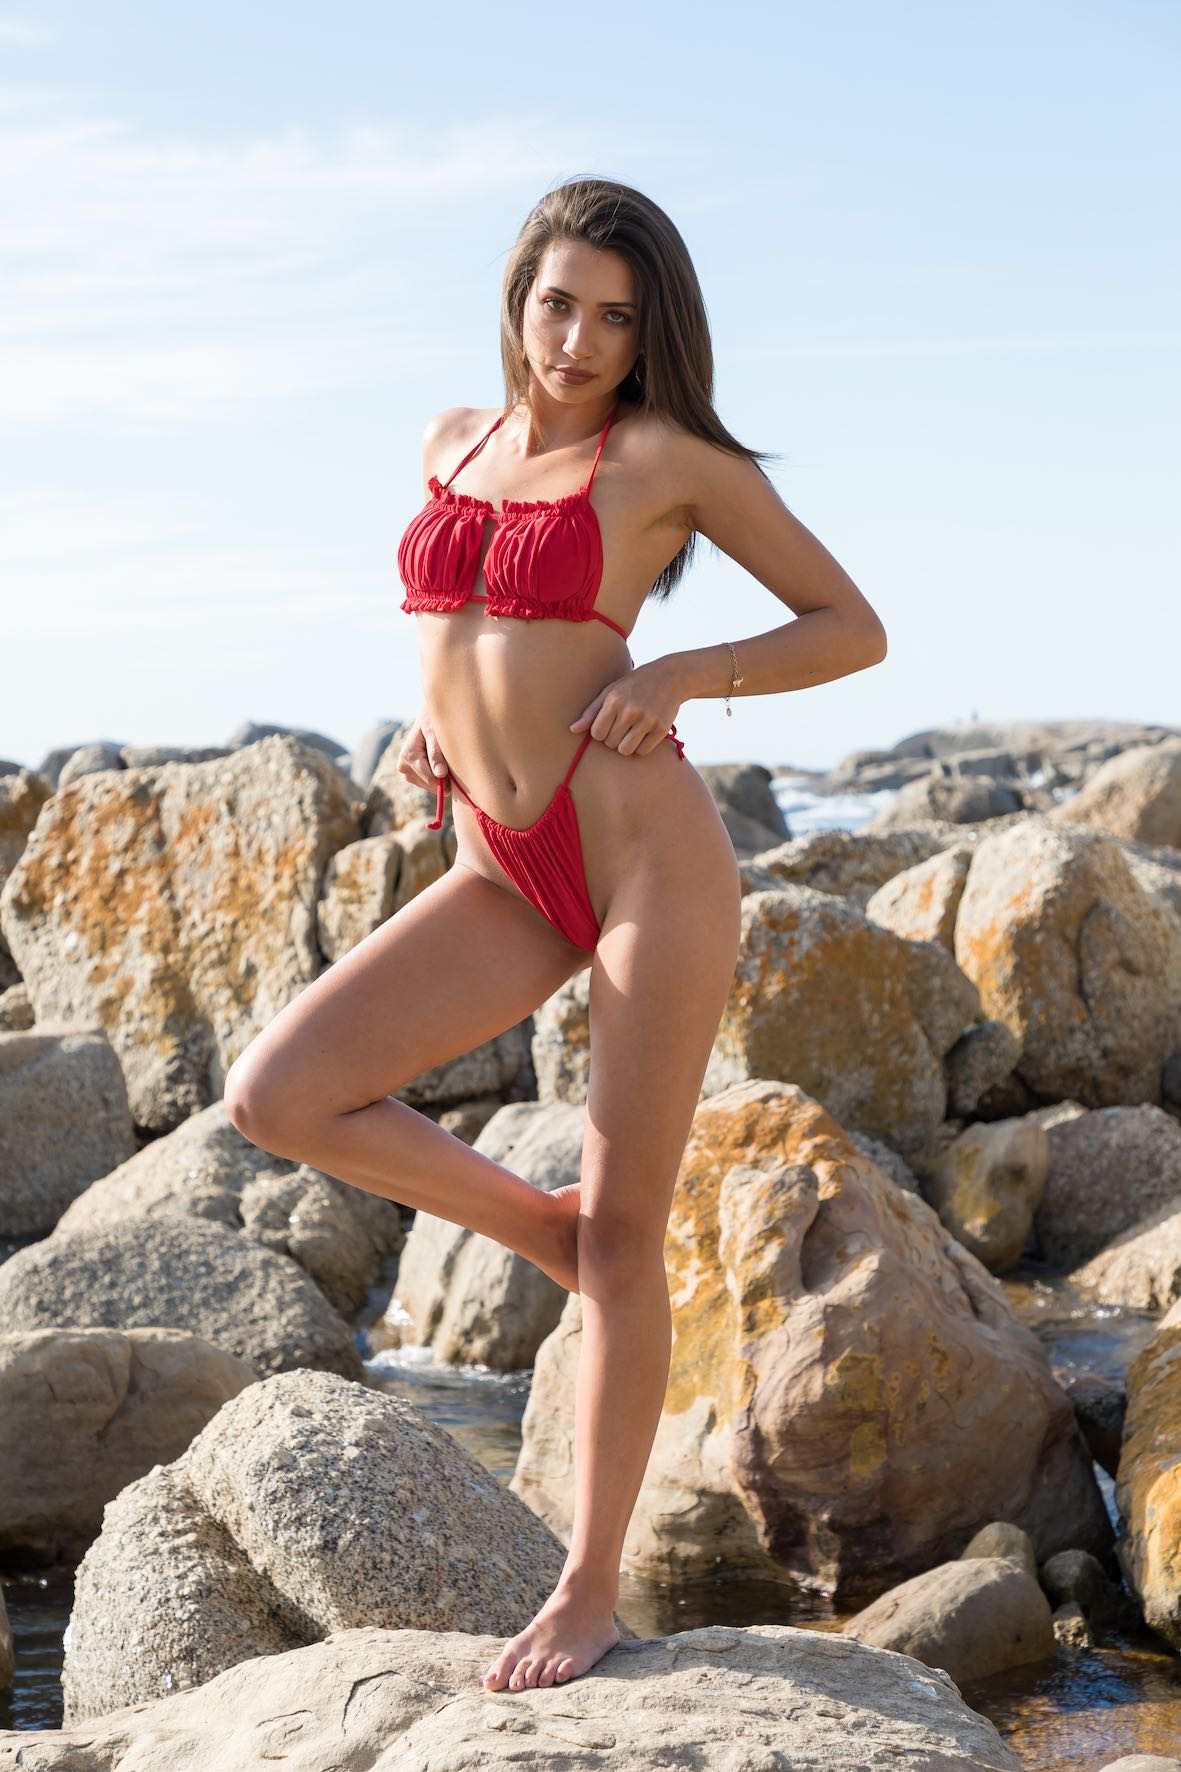 Our SA Girls feature with Tarryn Grung